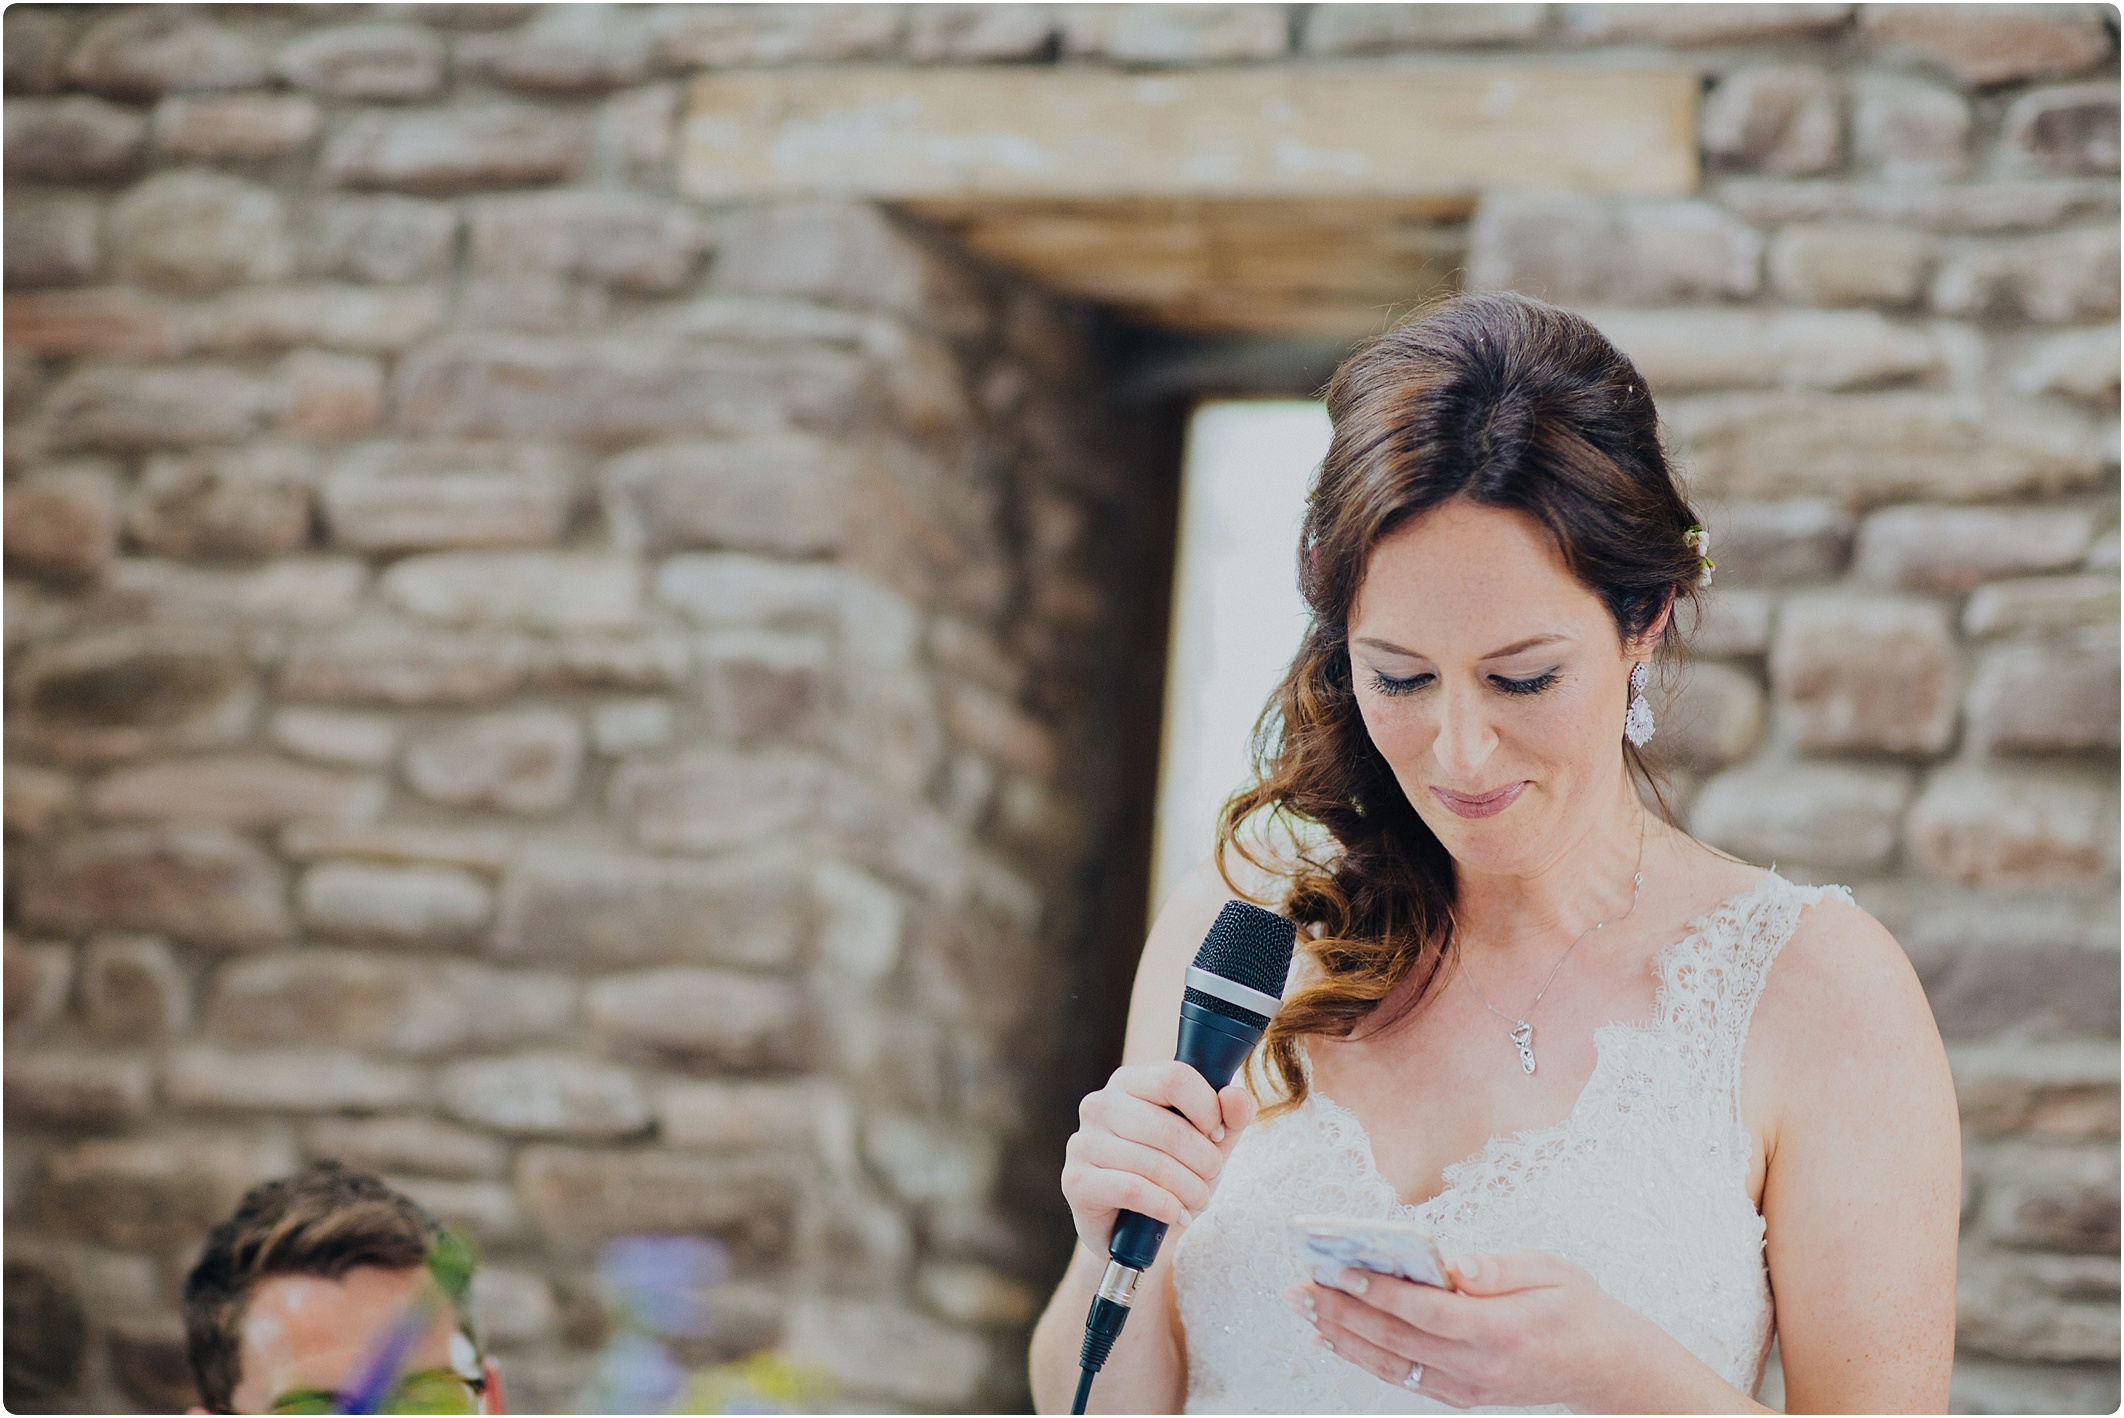 Treadam Barn Wedding bride doing speech